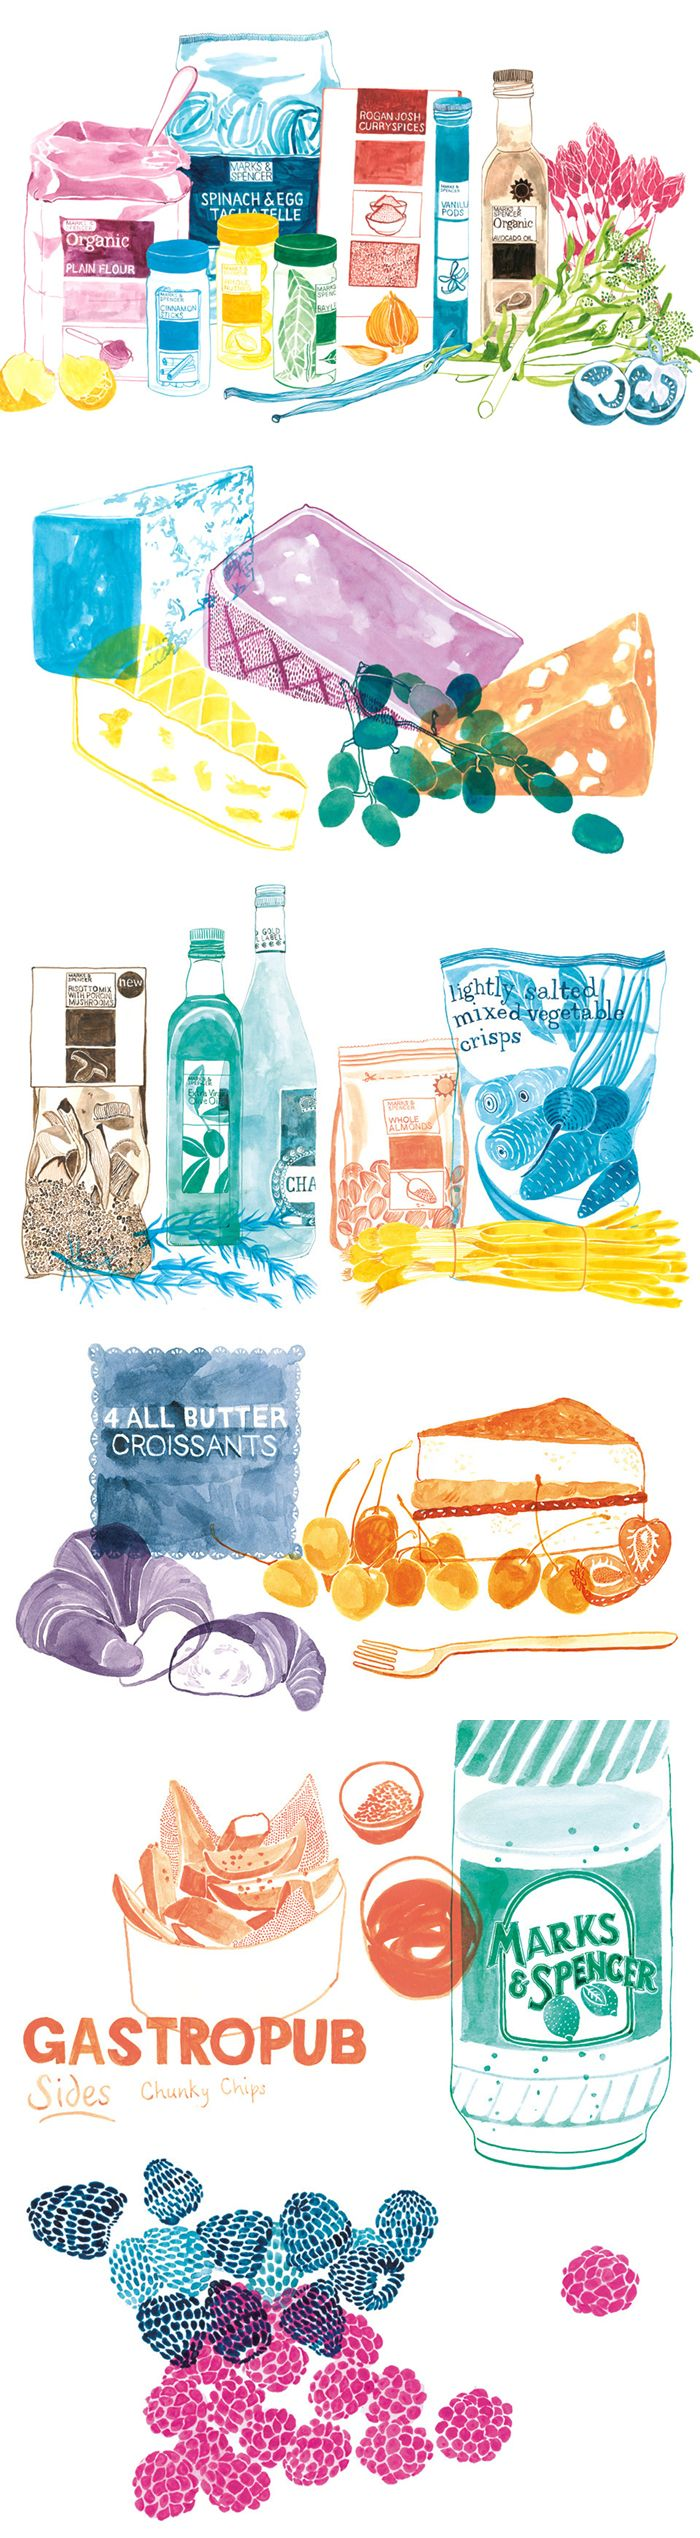 Wall illustrations for Marks and Spencer by Emily Robertson #art #illustration #painting